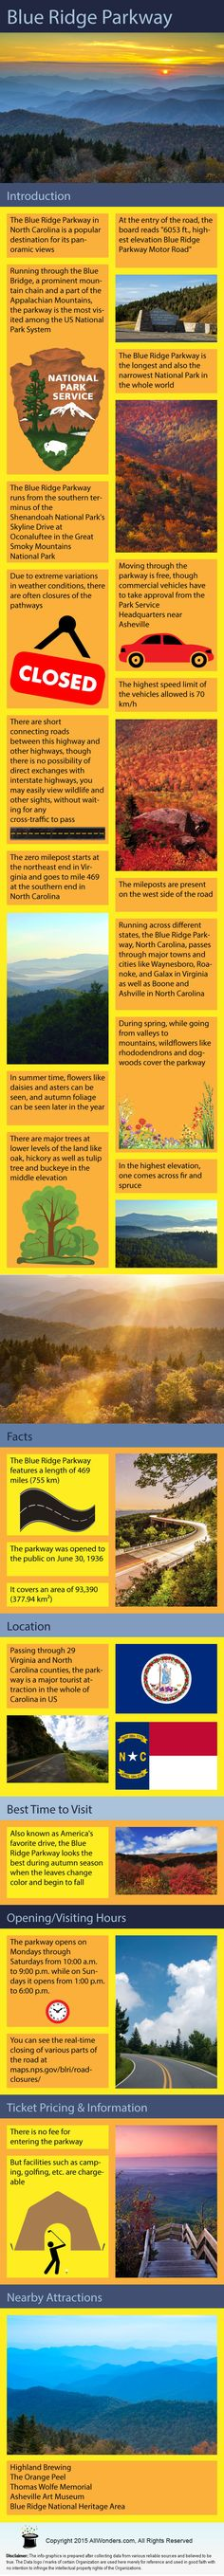 What is Blue Ridge Parkway - Infographic showing facts and information about Blue Ridge Parkway in North Carolina, USA.